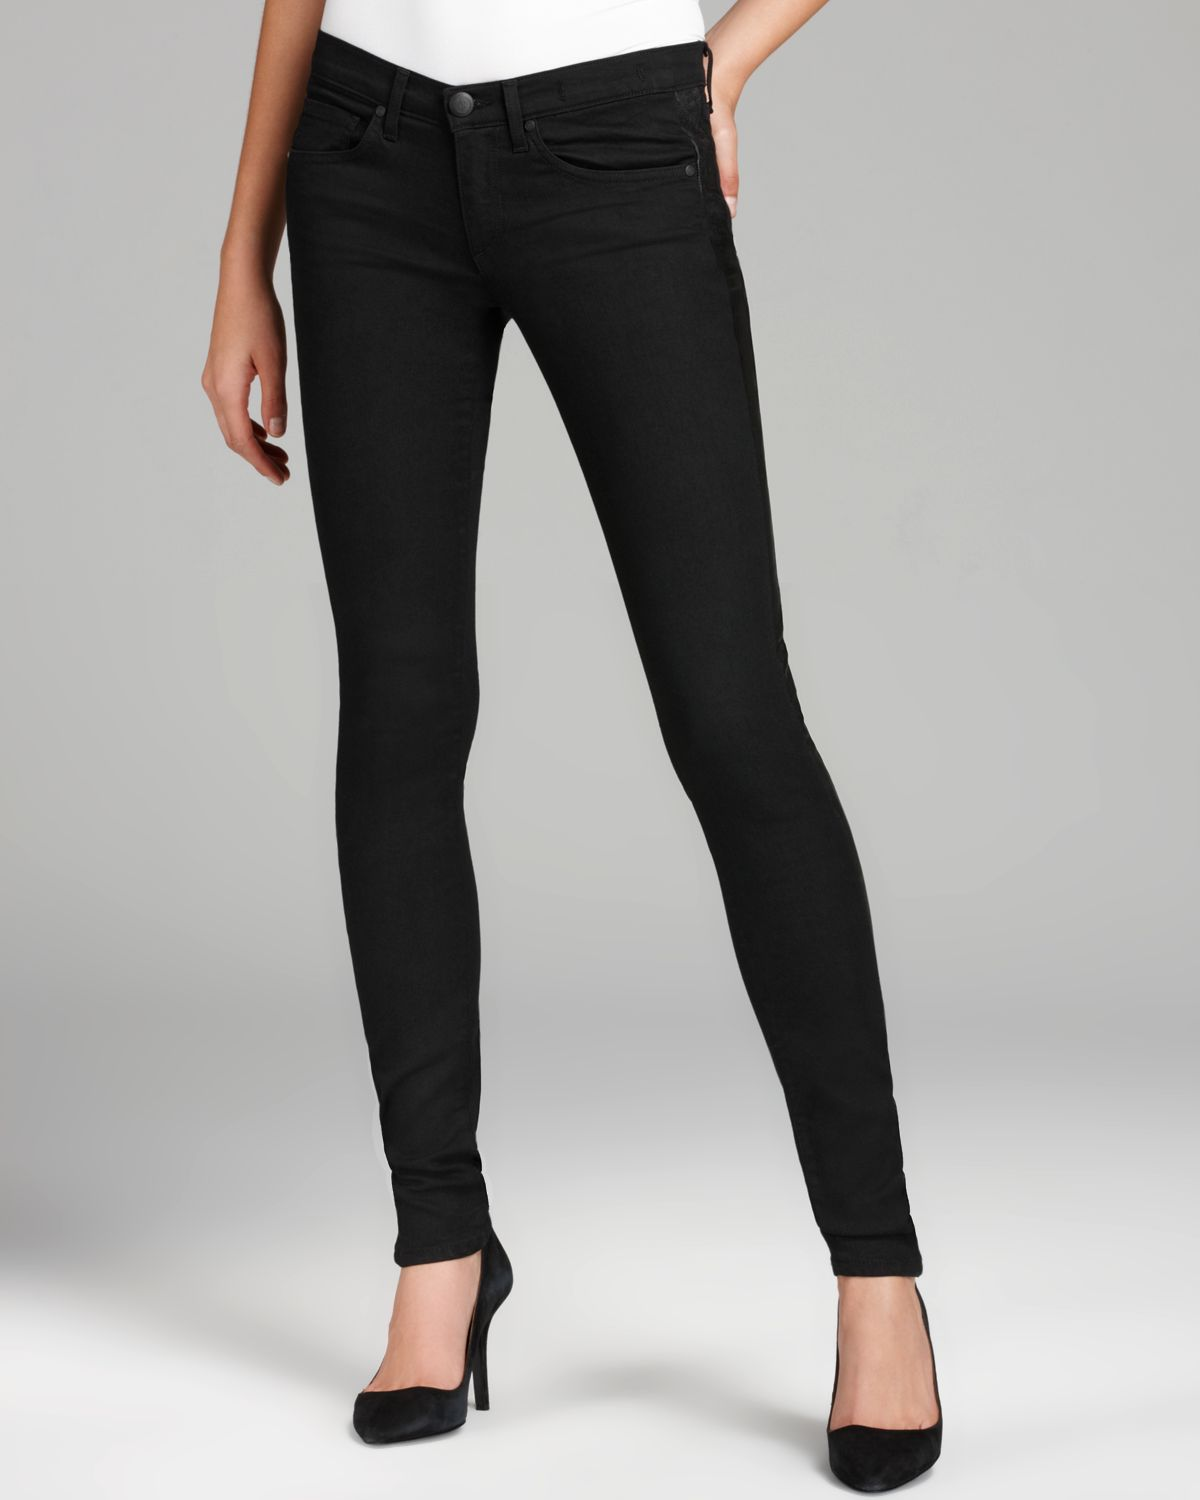 Lyst - Juicy Couture Skinny Jeans Leather Inset in Black 71bcc79d4